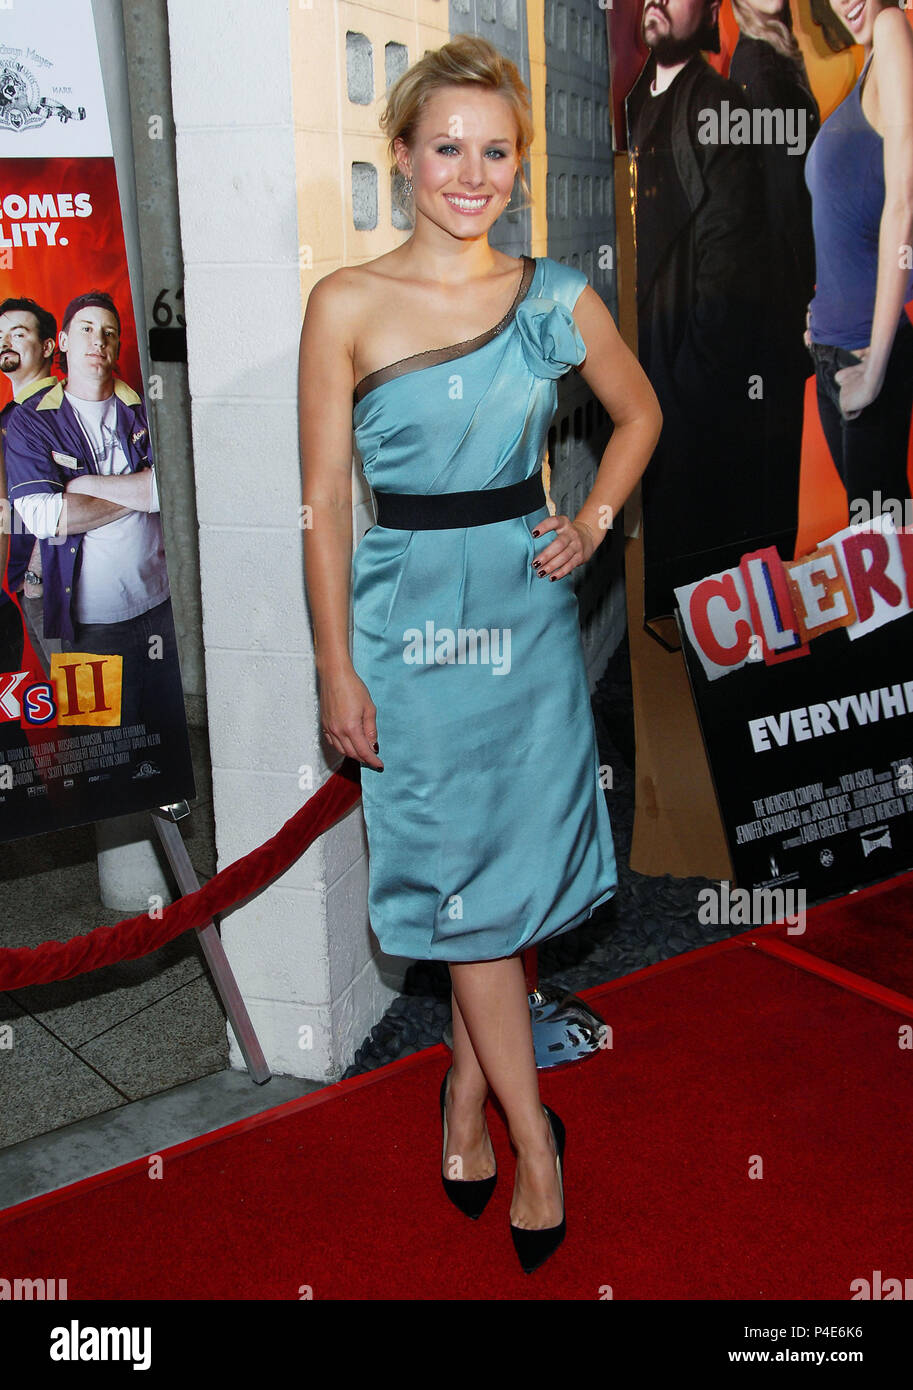 Kristin Bell arriving at the CLERK 2 Premiere at the Arclight Theatre  In Los Angeles. July 11,  2006. full fashion03_BellKristin08 Red Carpet Event, Vertical, USA, Film Industry, Celebrities,  Photography, Bestof, Arts Culture and Entertainment, Topix Celebrities fashion /  Vertical, Best of, Event in Hollywood Life - California,  Red Carpet and backstage, USA, Film Industry, Celebrities,  movie celebrities, TV celebrities, Music celebrities, Photography, Bestof, Arts Culture and Entertainment,  Topix, vertical, one person,, from the year , 2006, inquiry tsuni@Gamma-USA.com Fashion - Full Len - Stock Image